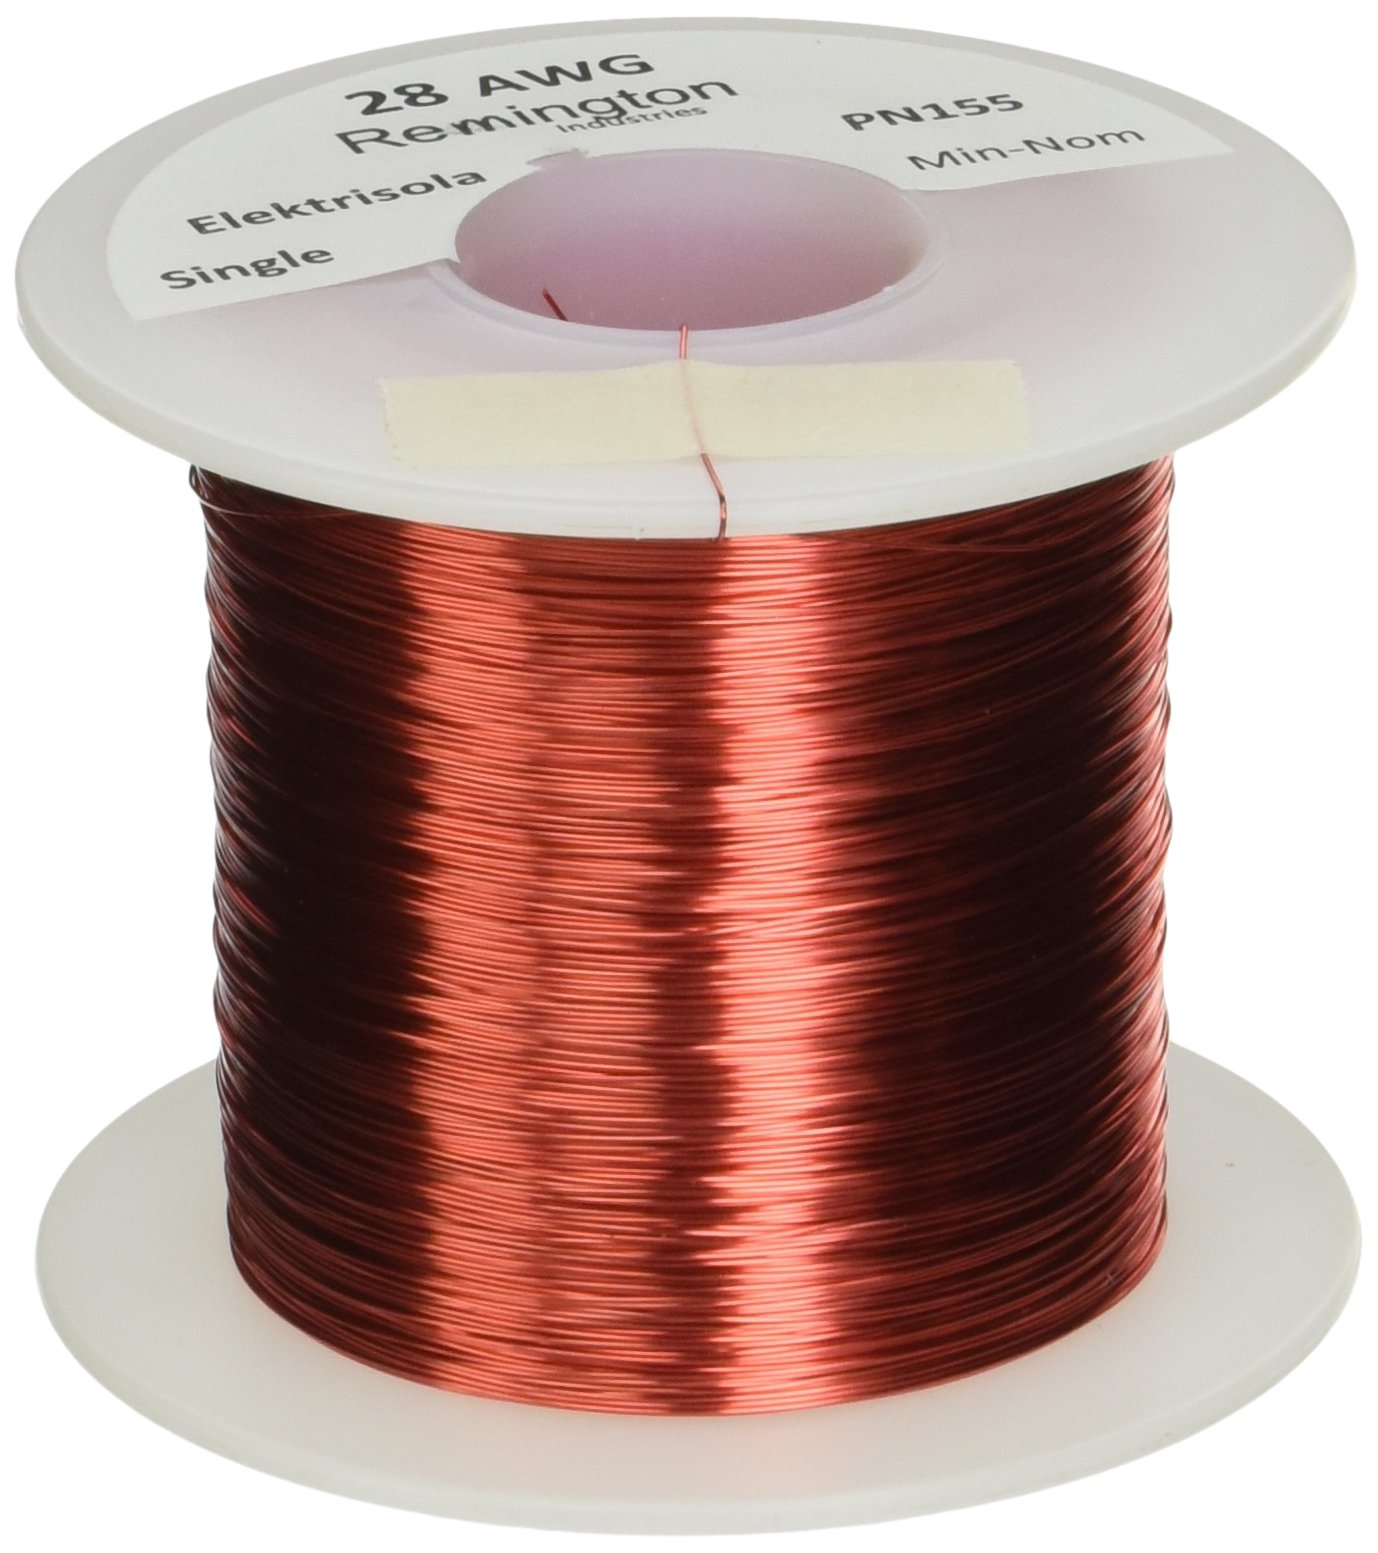 Remington Industries 28SNSP Magnet Wire, Enameled Copper Wire, 28 AWG, 1.0 lb, 2027' Length, 0.0135'' Diameter, Red